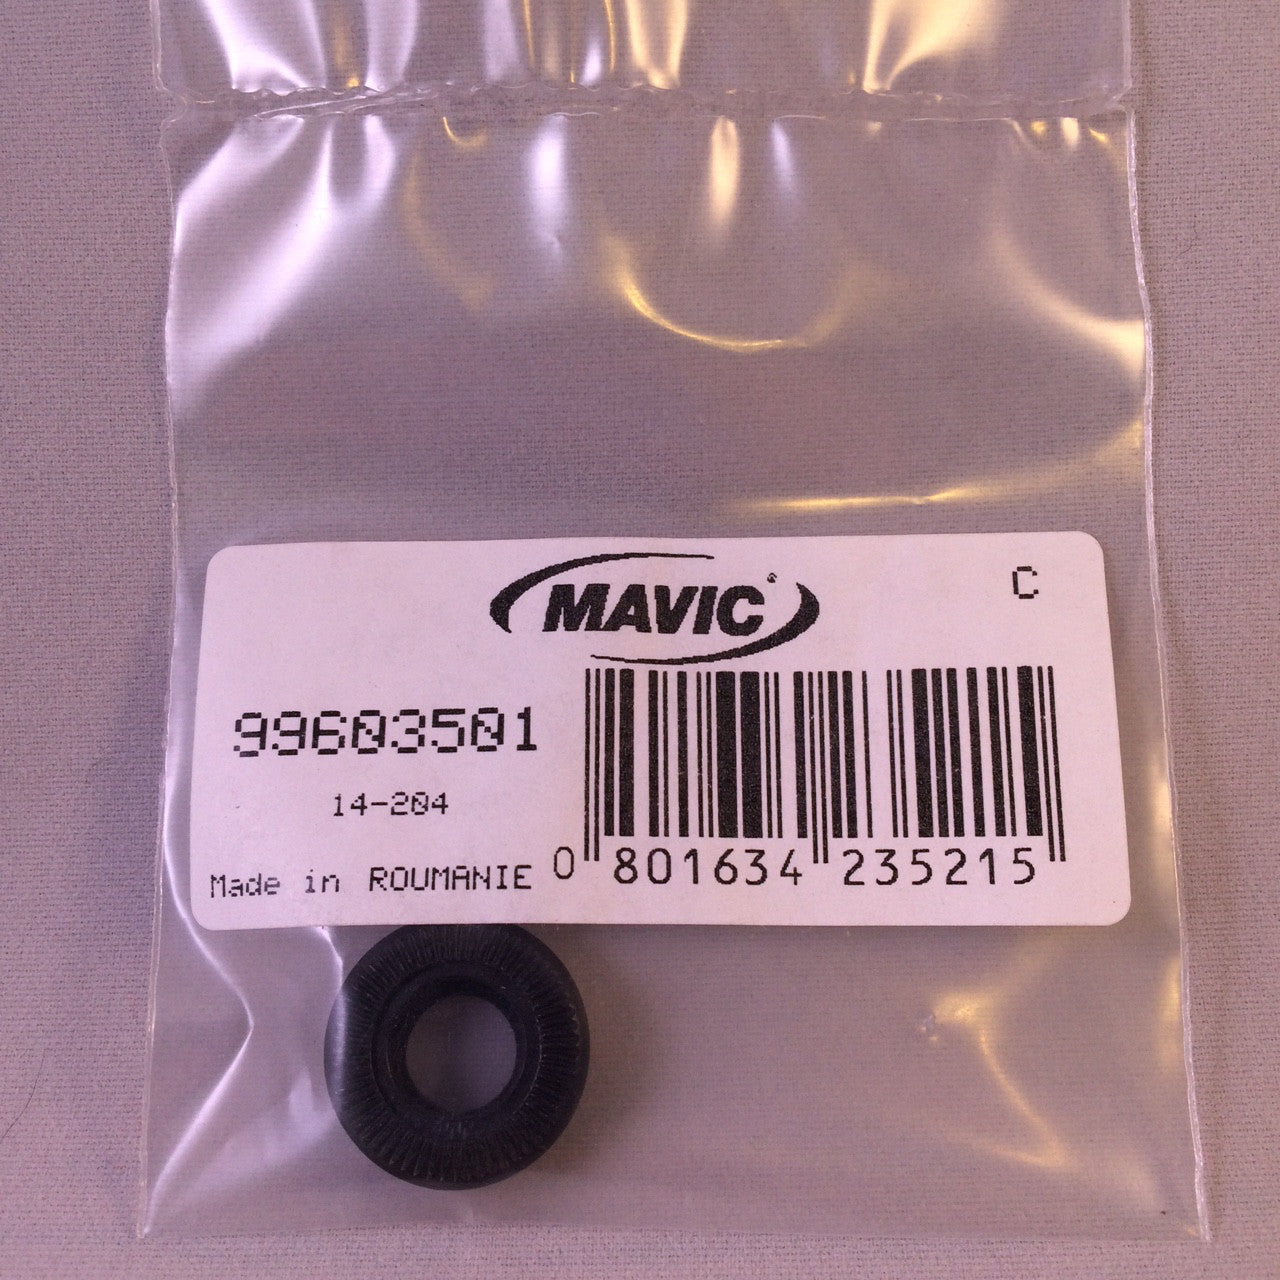 Mavic Rear Axle Support - 99603501